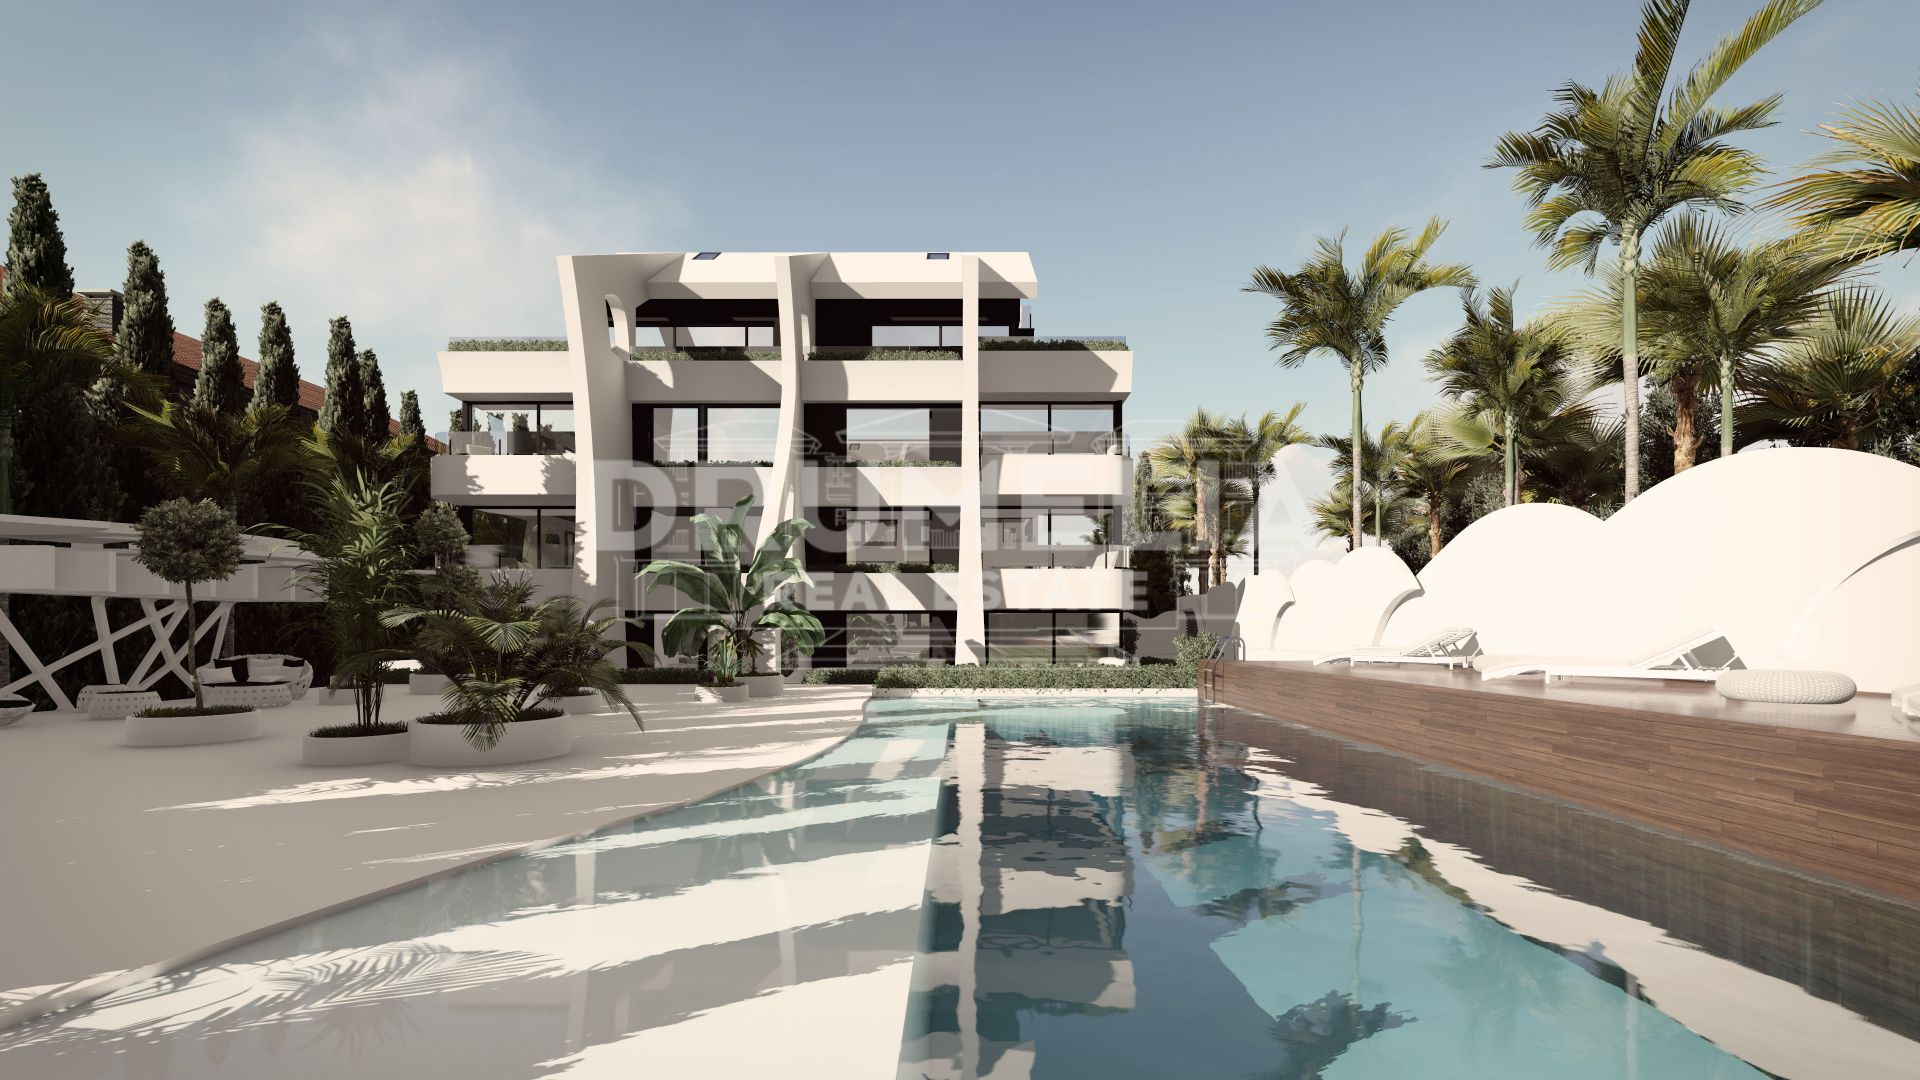 Marbella East, New Stylish Modern Luxury Duplex Penthouse, Carib Playa, Marbella East